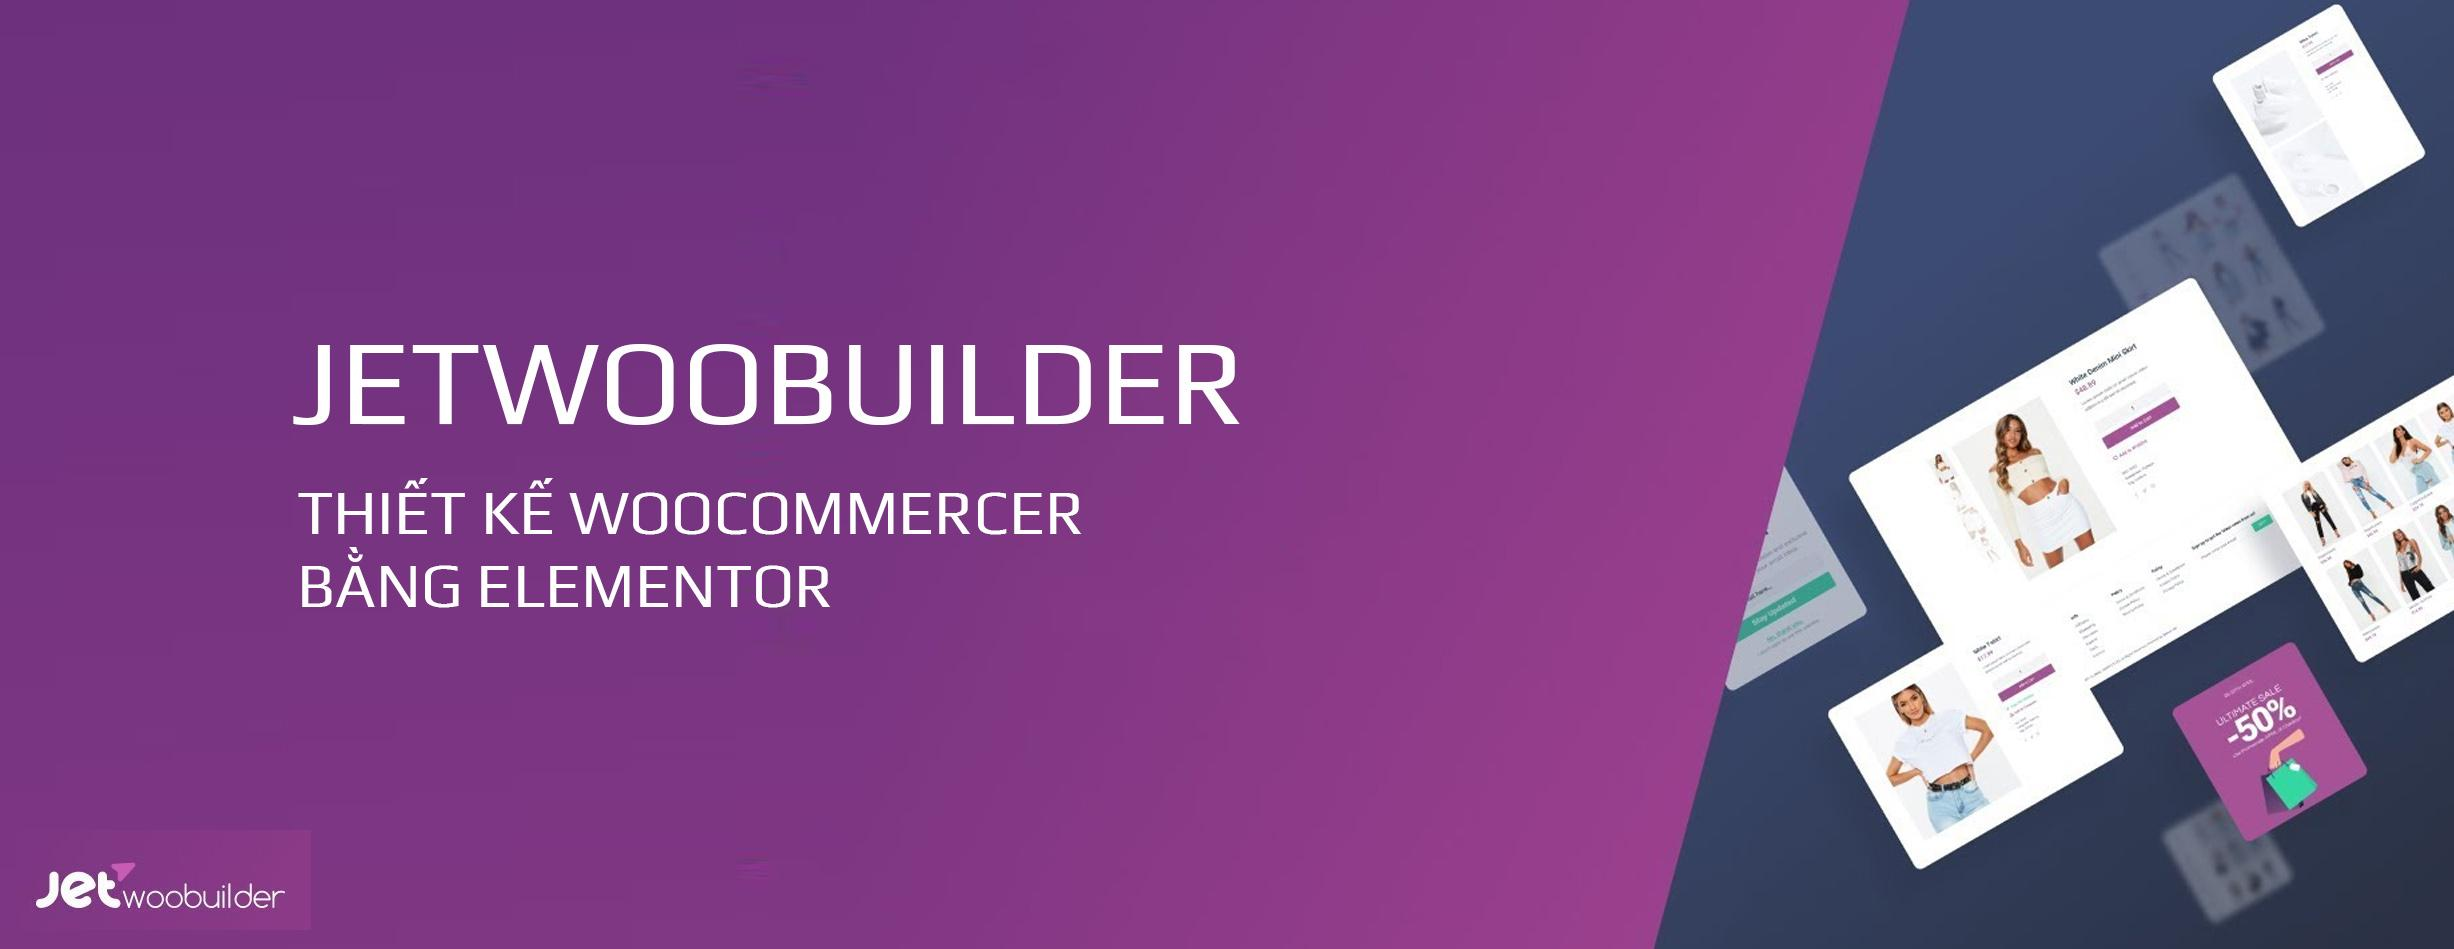 You are currently viewing JetWoobuilder | Thiết Kế Woocommercer Bằng Elementor